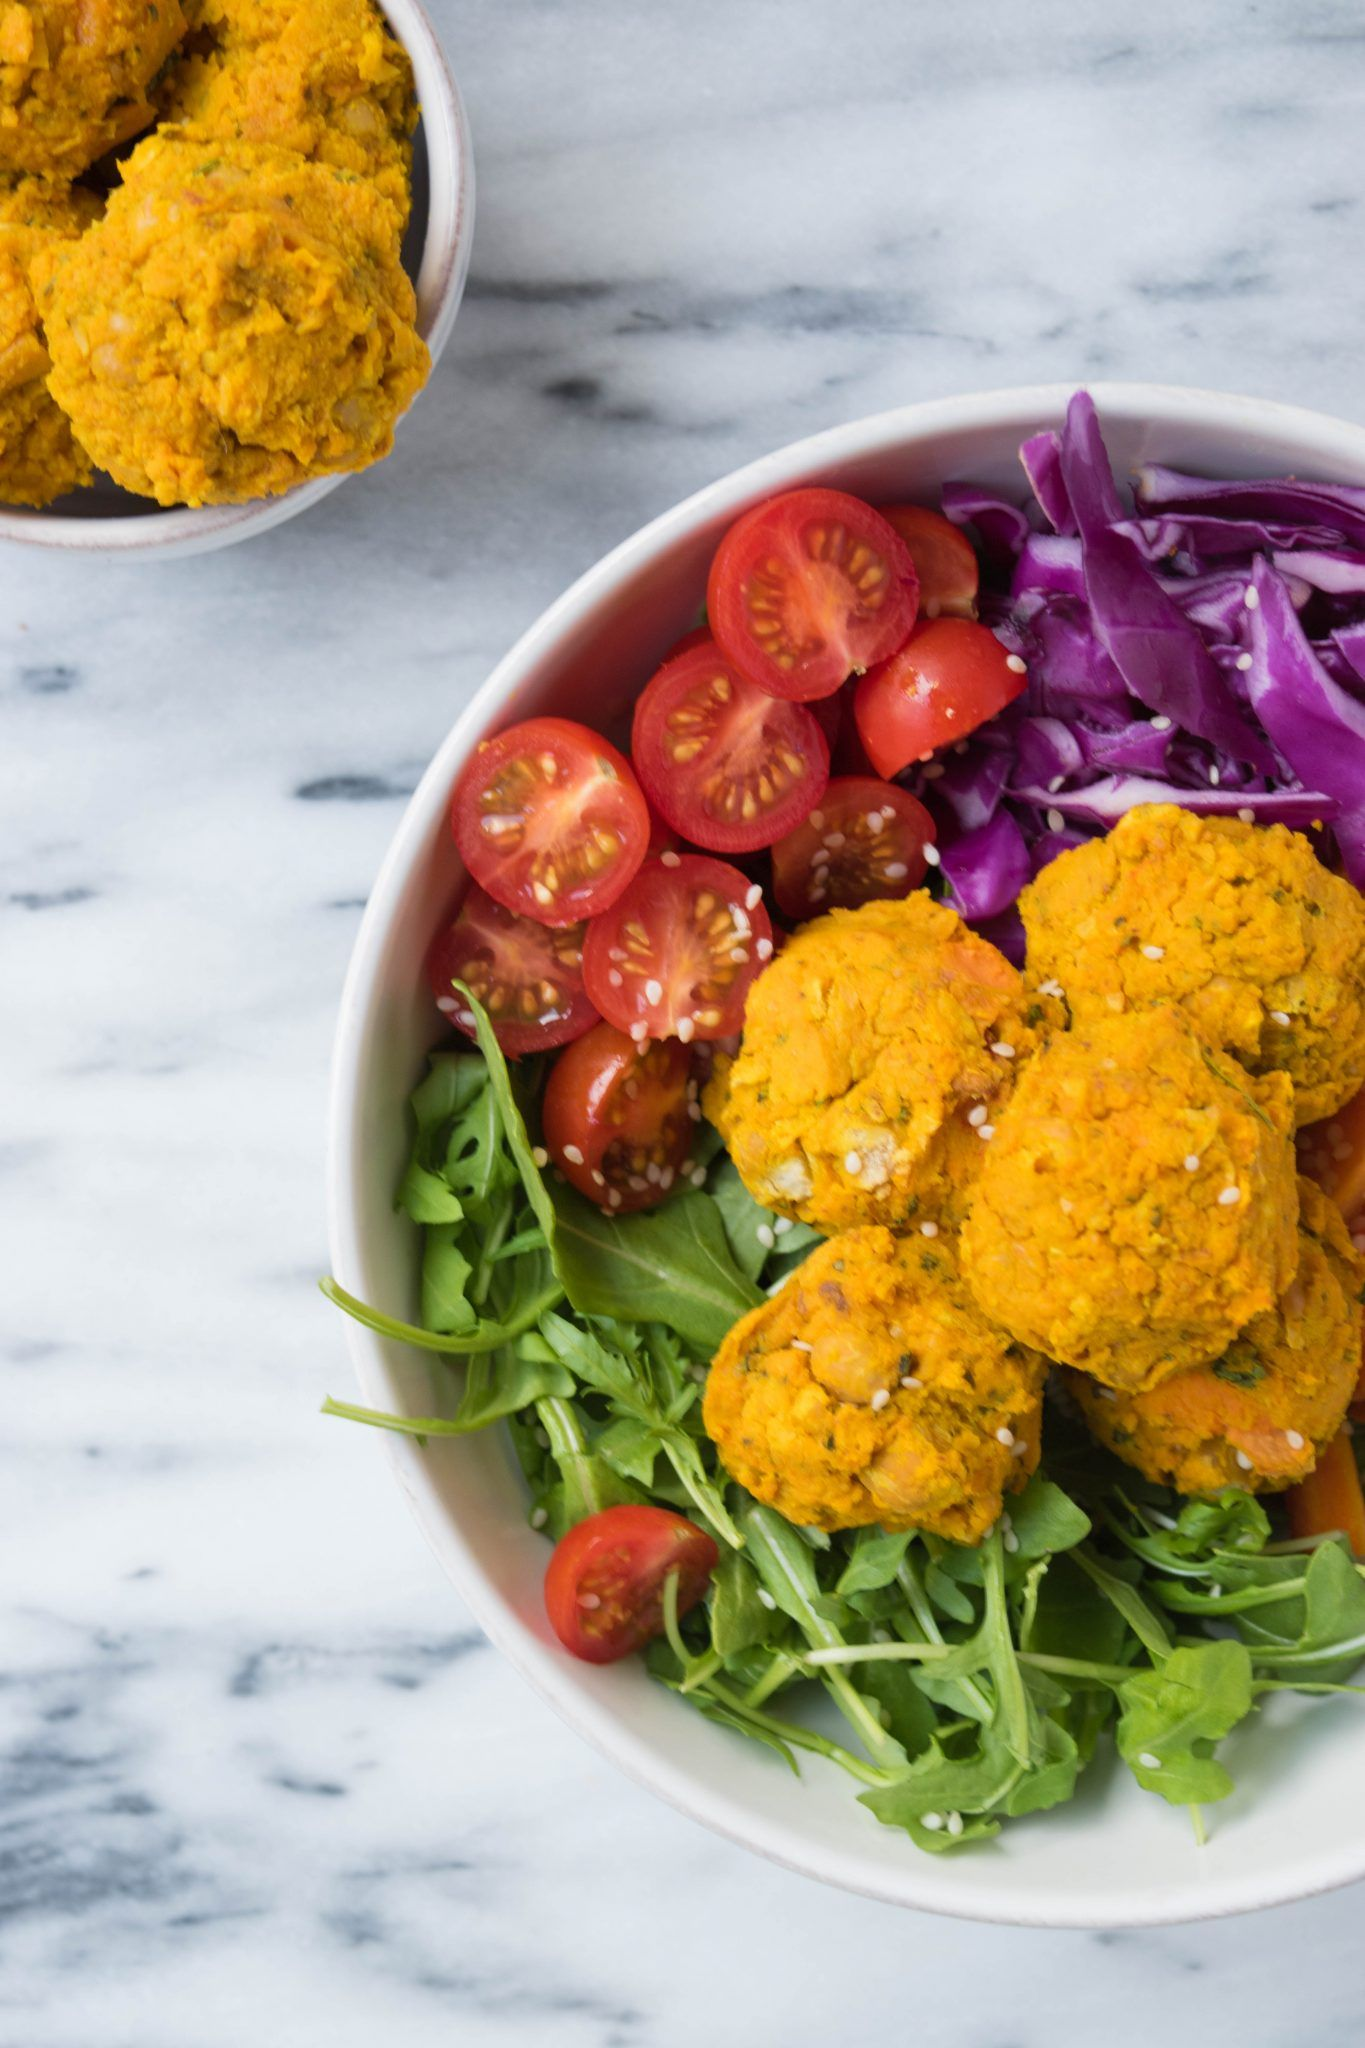 THIS feel-good vegan and gluten-free 10-Ingredient Sweet Potato Falafel recipe is the best. SO easy to throw together and tastes just heavenly. The falafels are baked, not fried and come backed with zesty spices and a pop of color.